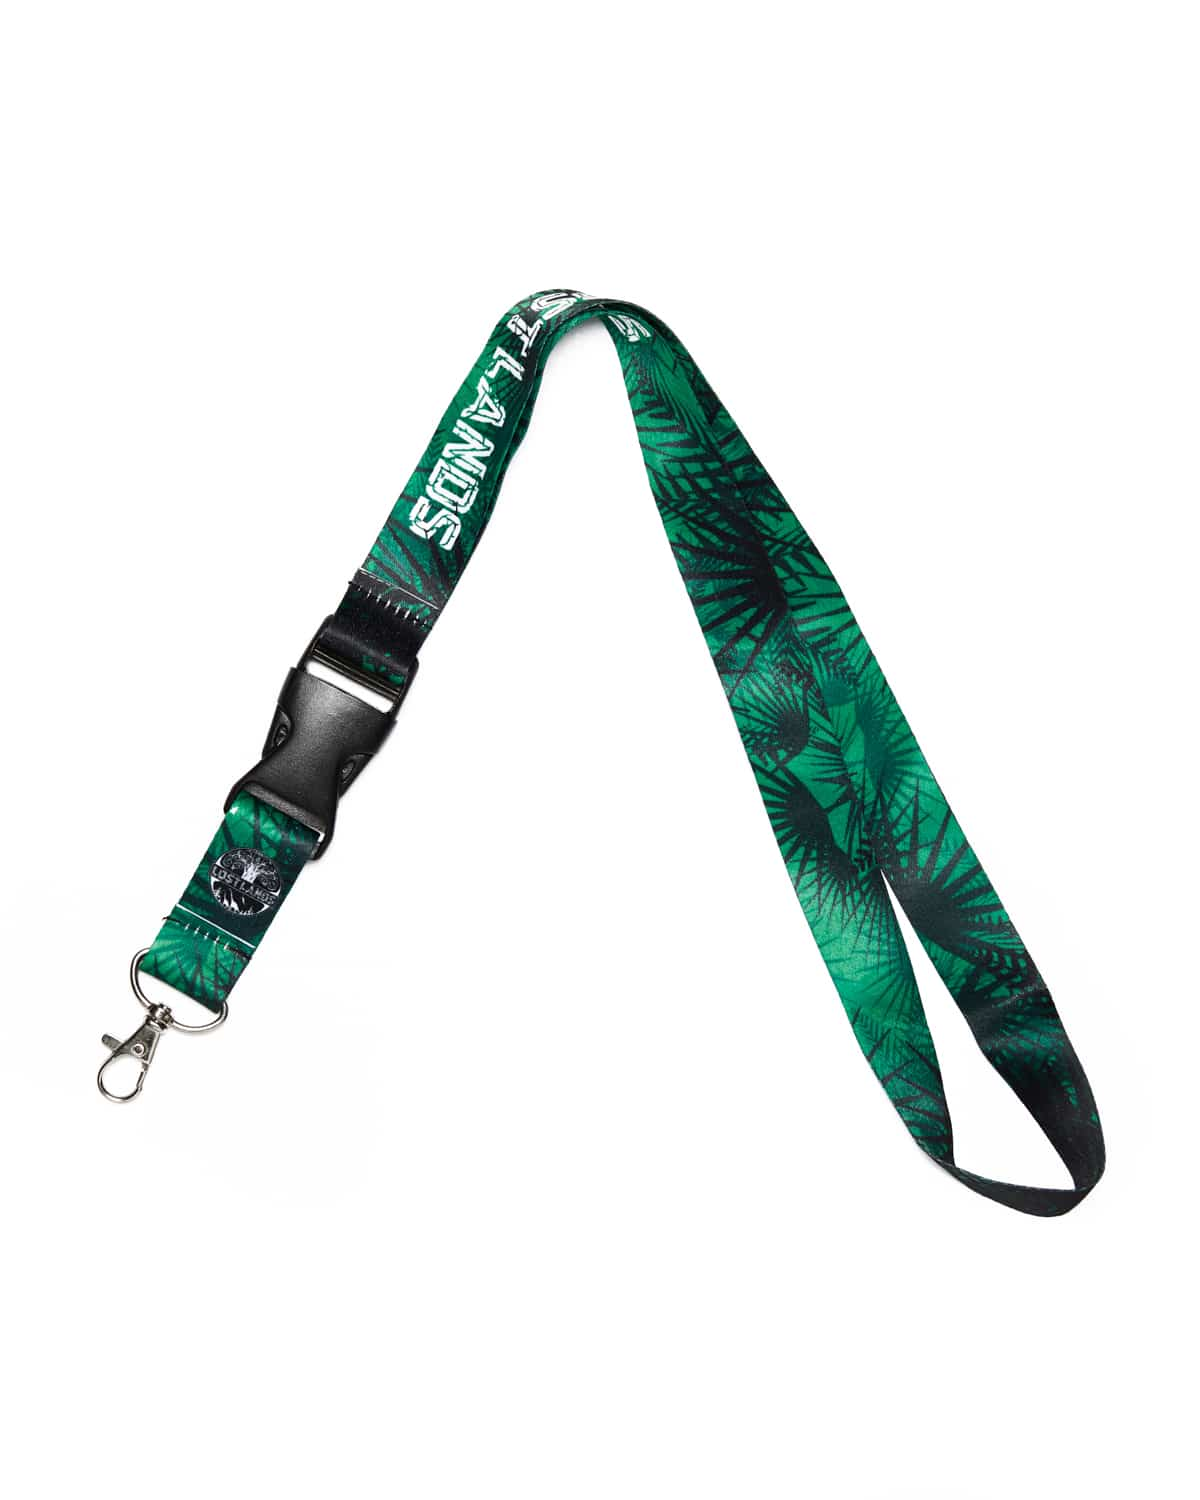 Lost Lands 'Foliage' Lanyard (Green)